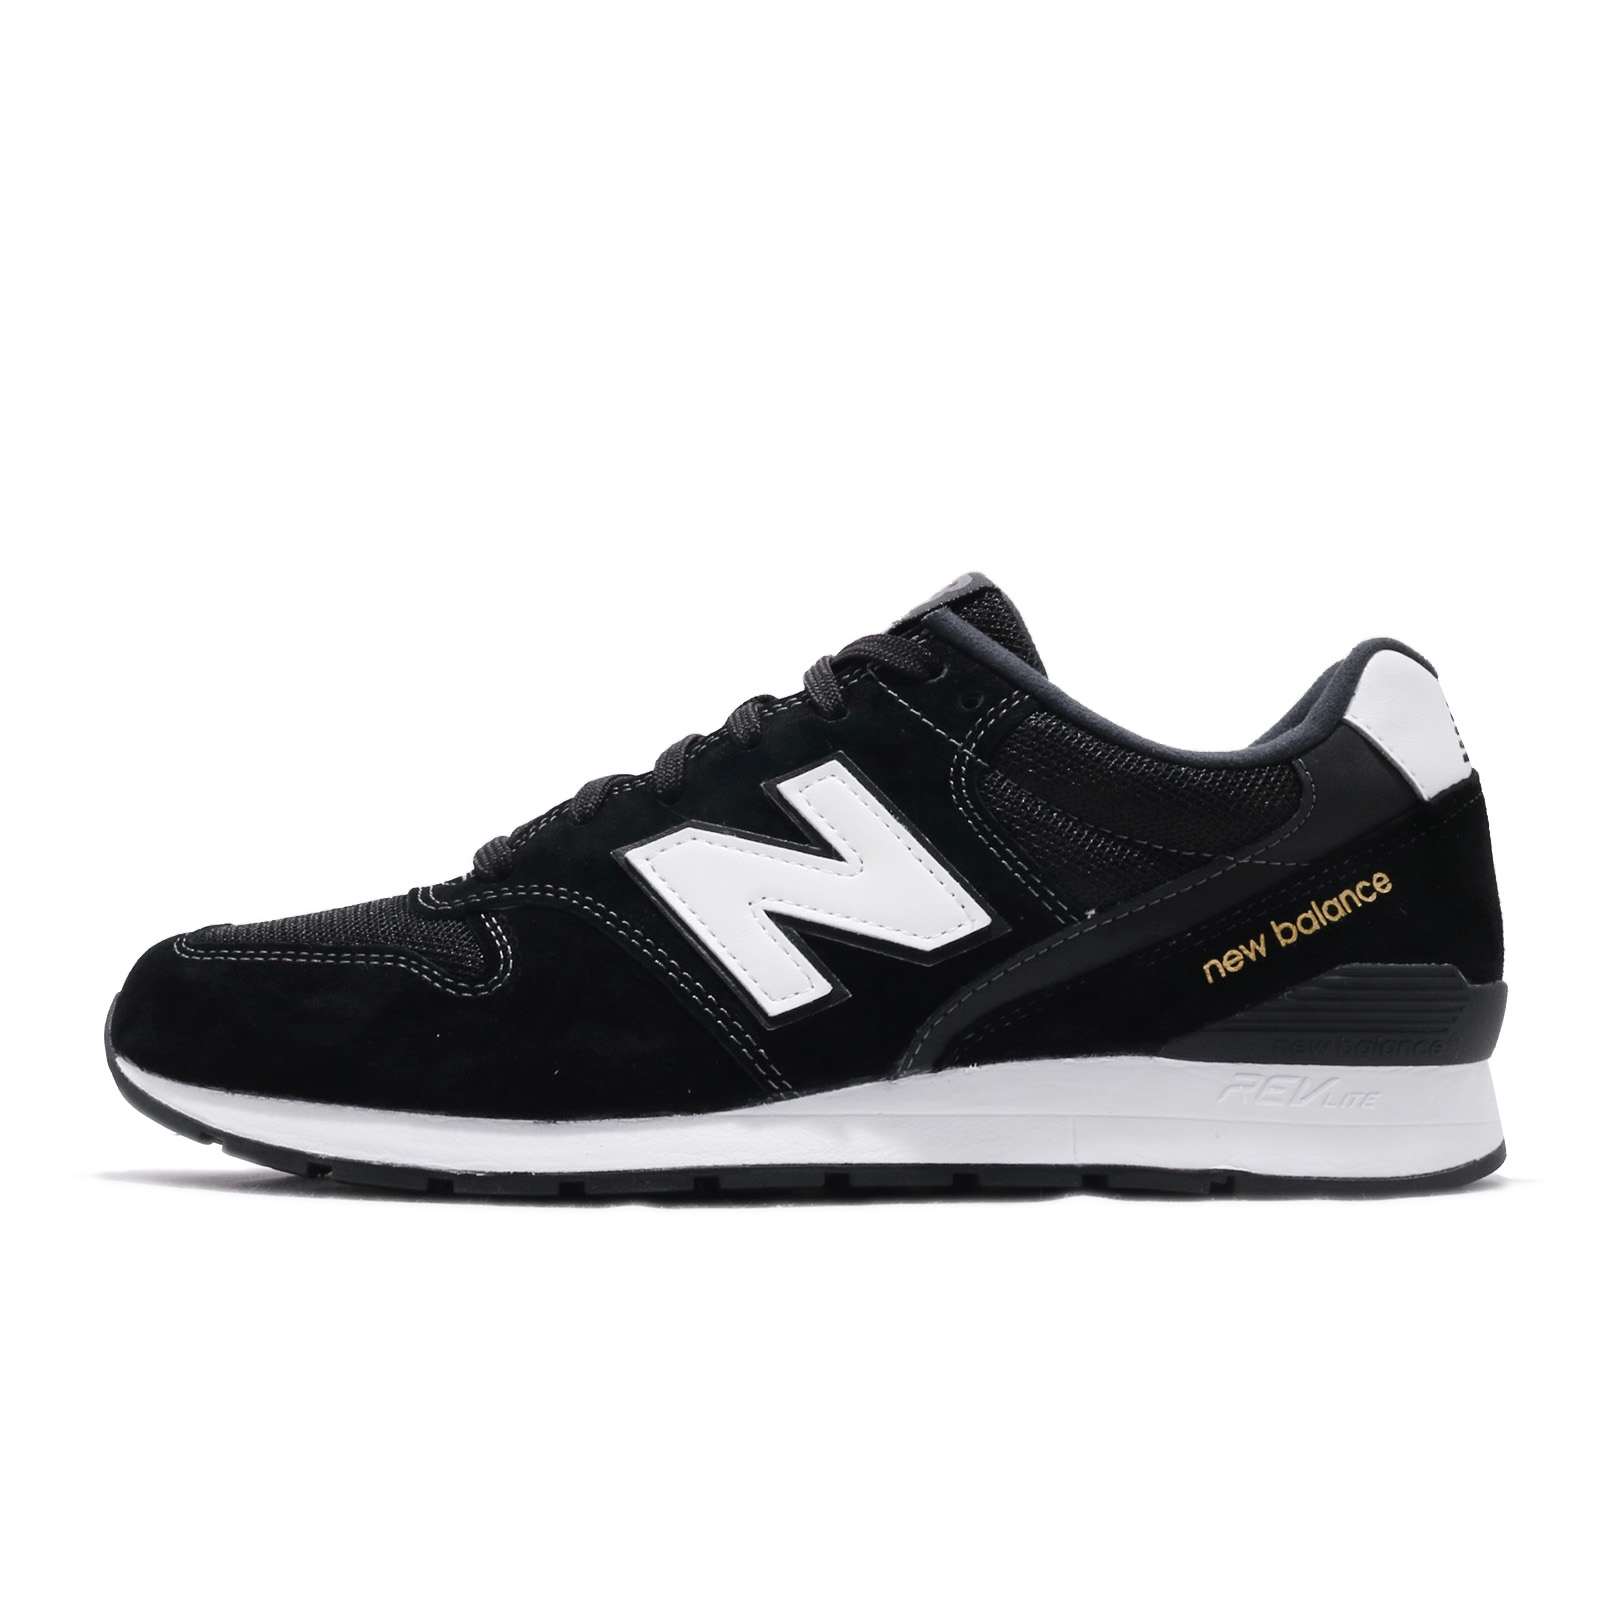 huge selection of c0b07 7e015 Details about New Balance MRL996PK D Black White Gold Men Running Shoes  Sneakers MRL996PKD